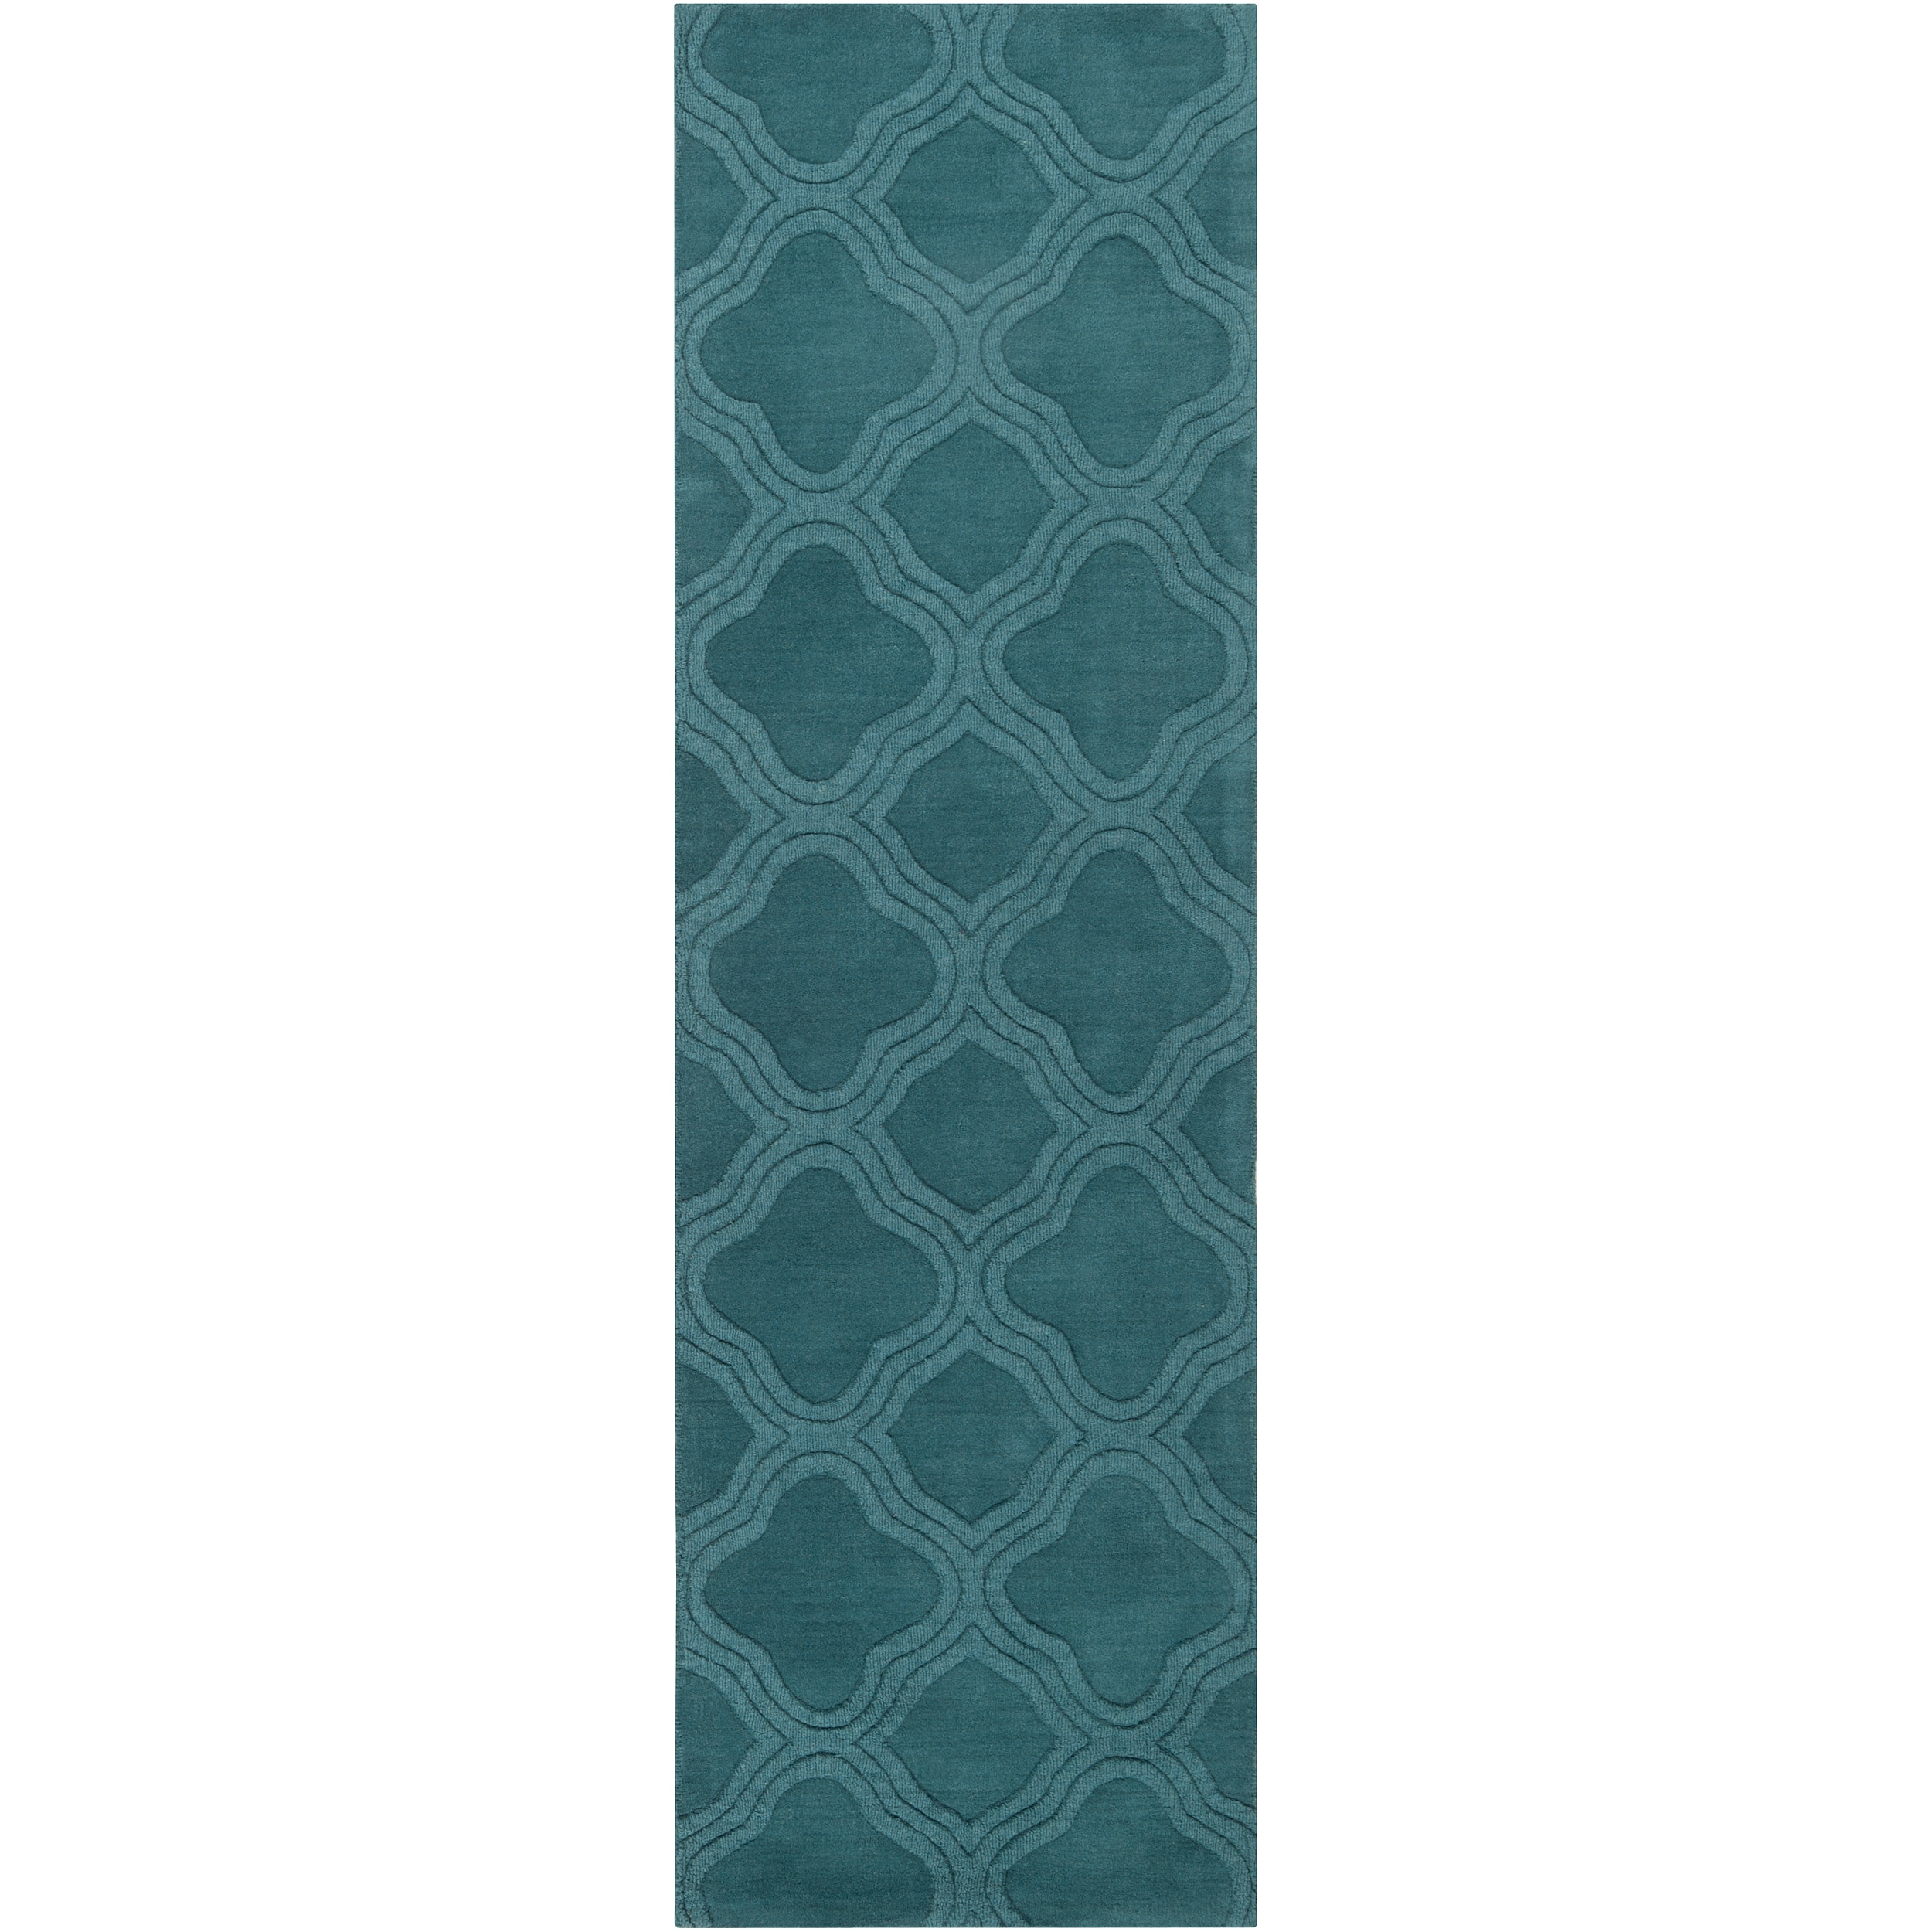 Hand-crafted Green Mantra Wool Rug (2'6 x 8')